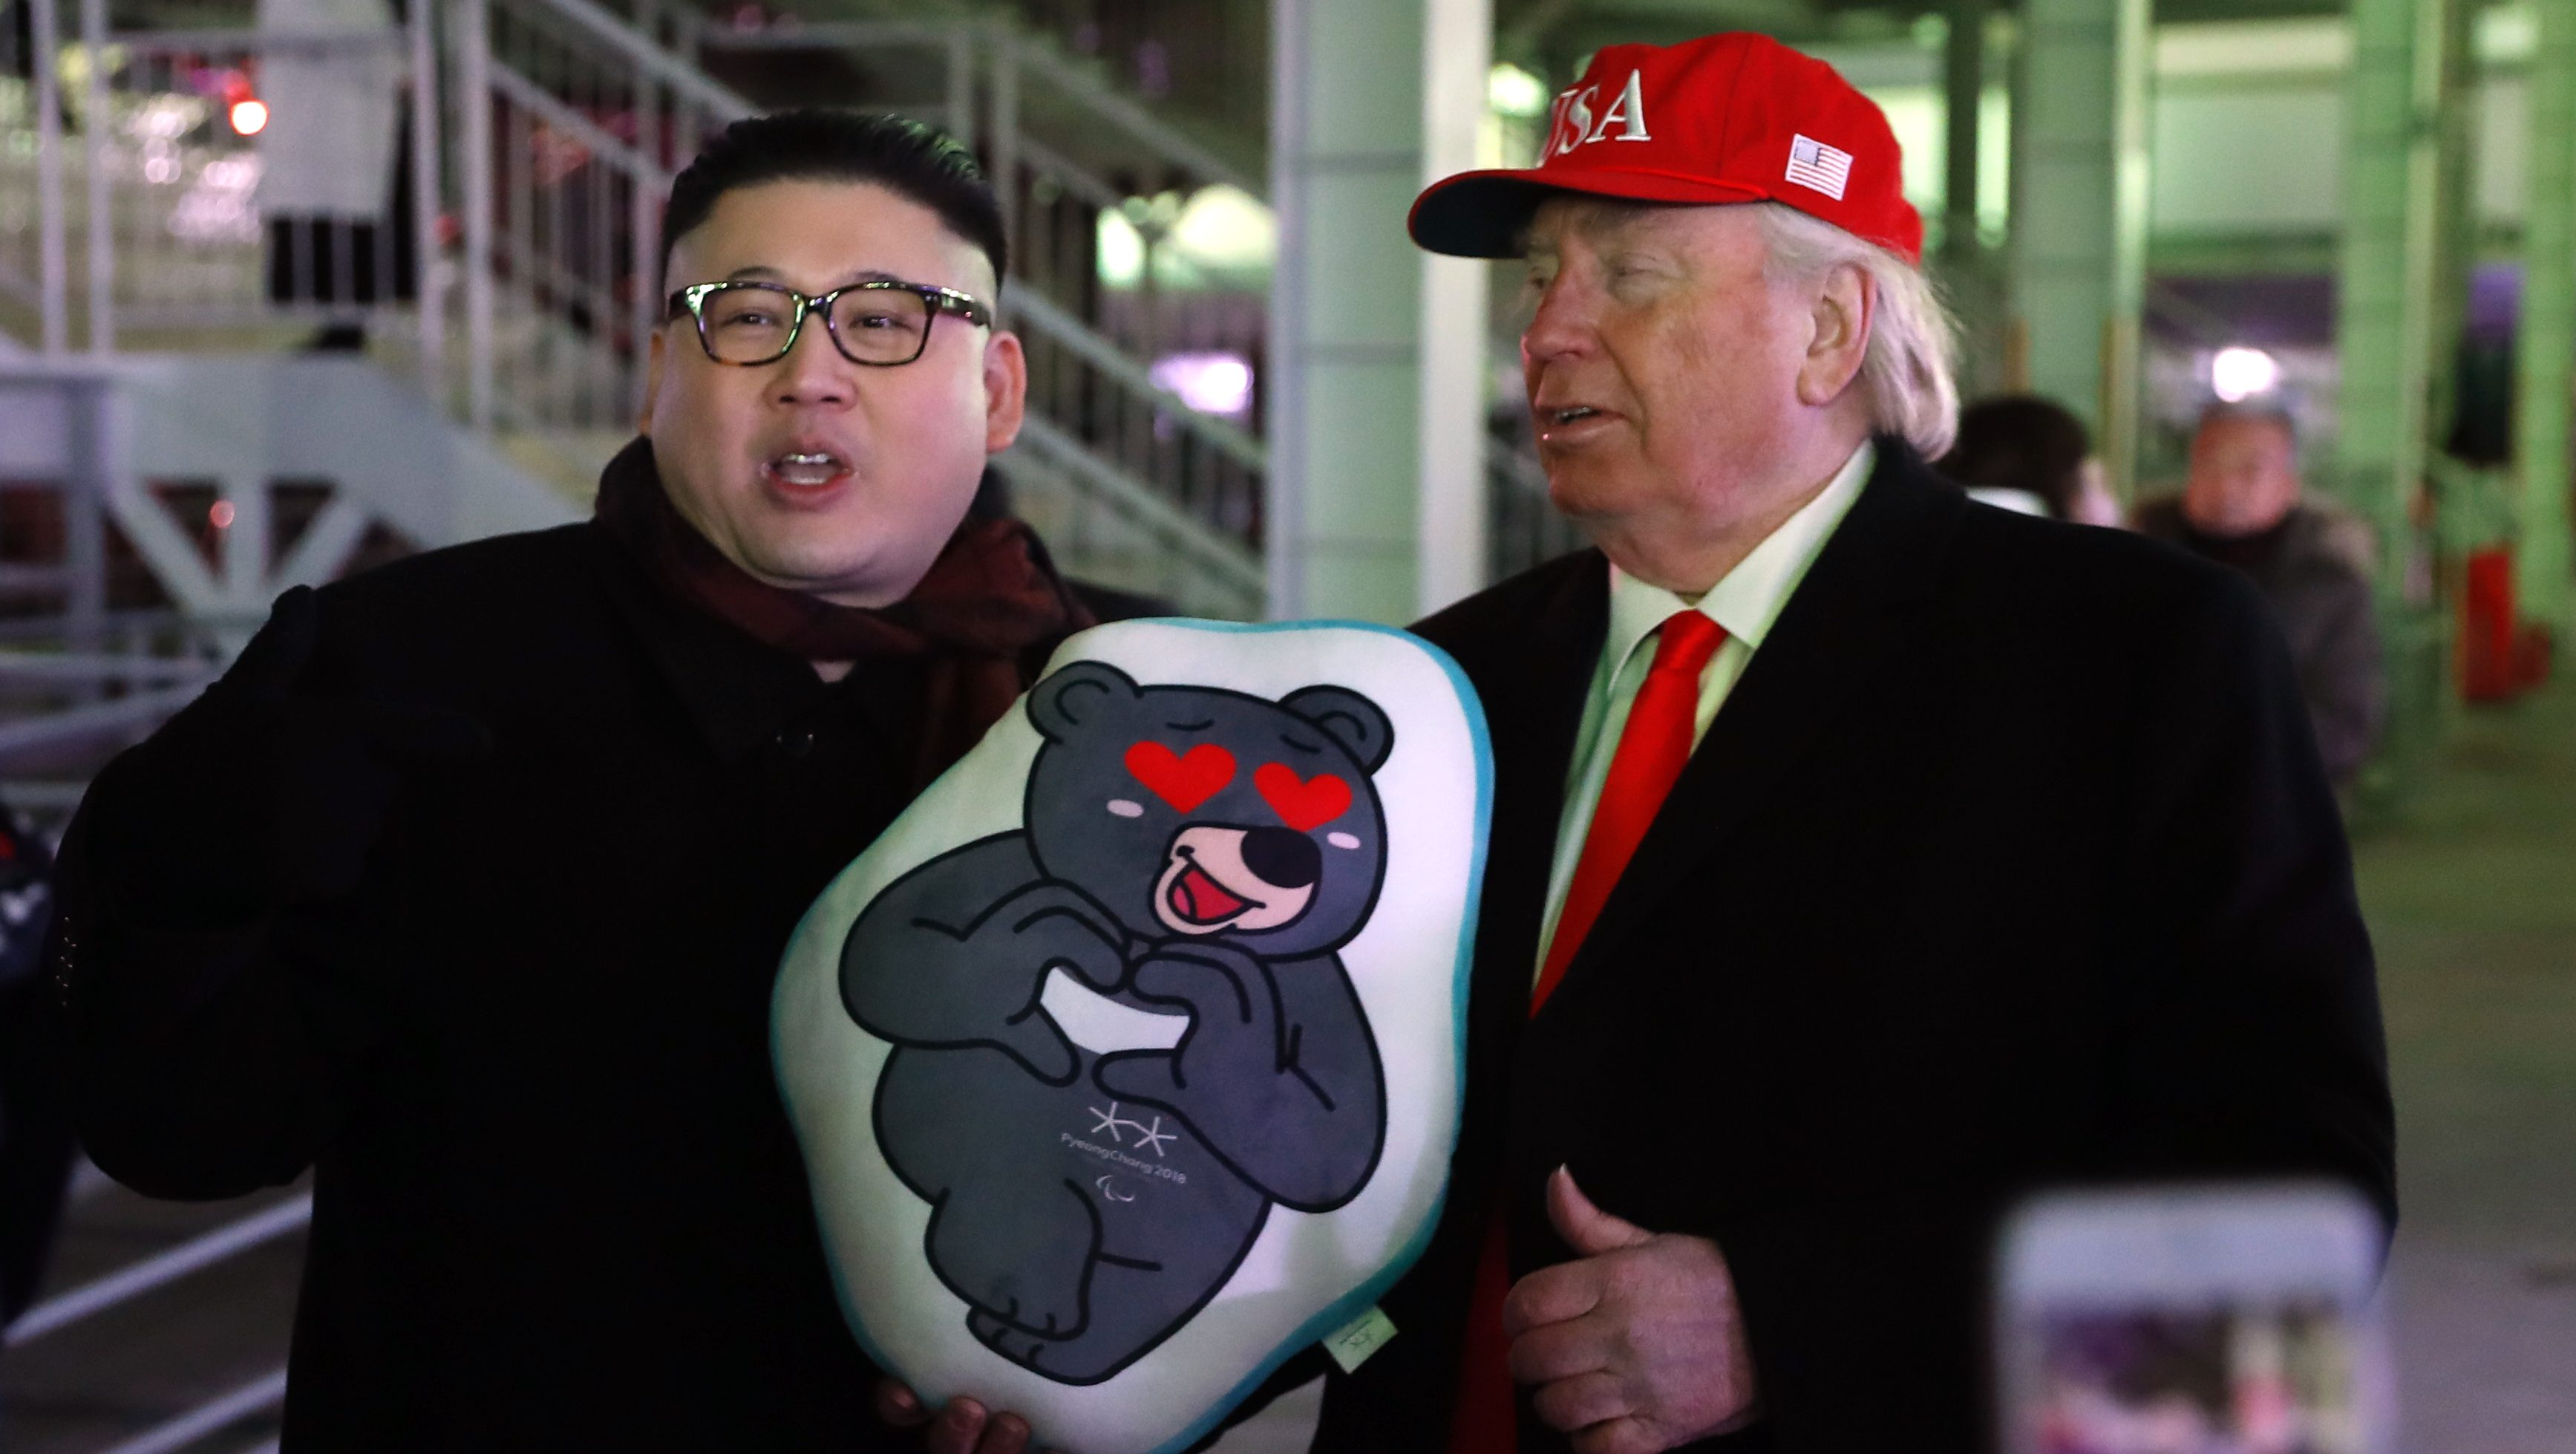 Pyeongchang 2018 Winter Olympics - Closing ceremony - Pyeongchang Olympic Stadium - Pyeongchang, South Korea - February 25, 2018 - Two men dressed as look-a-likes of U.S. President Donald Trump and North Korean leader Kim Jong Un pose.